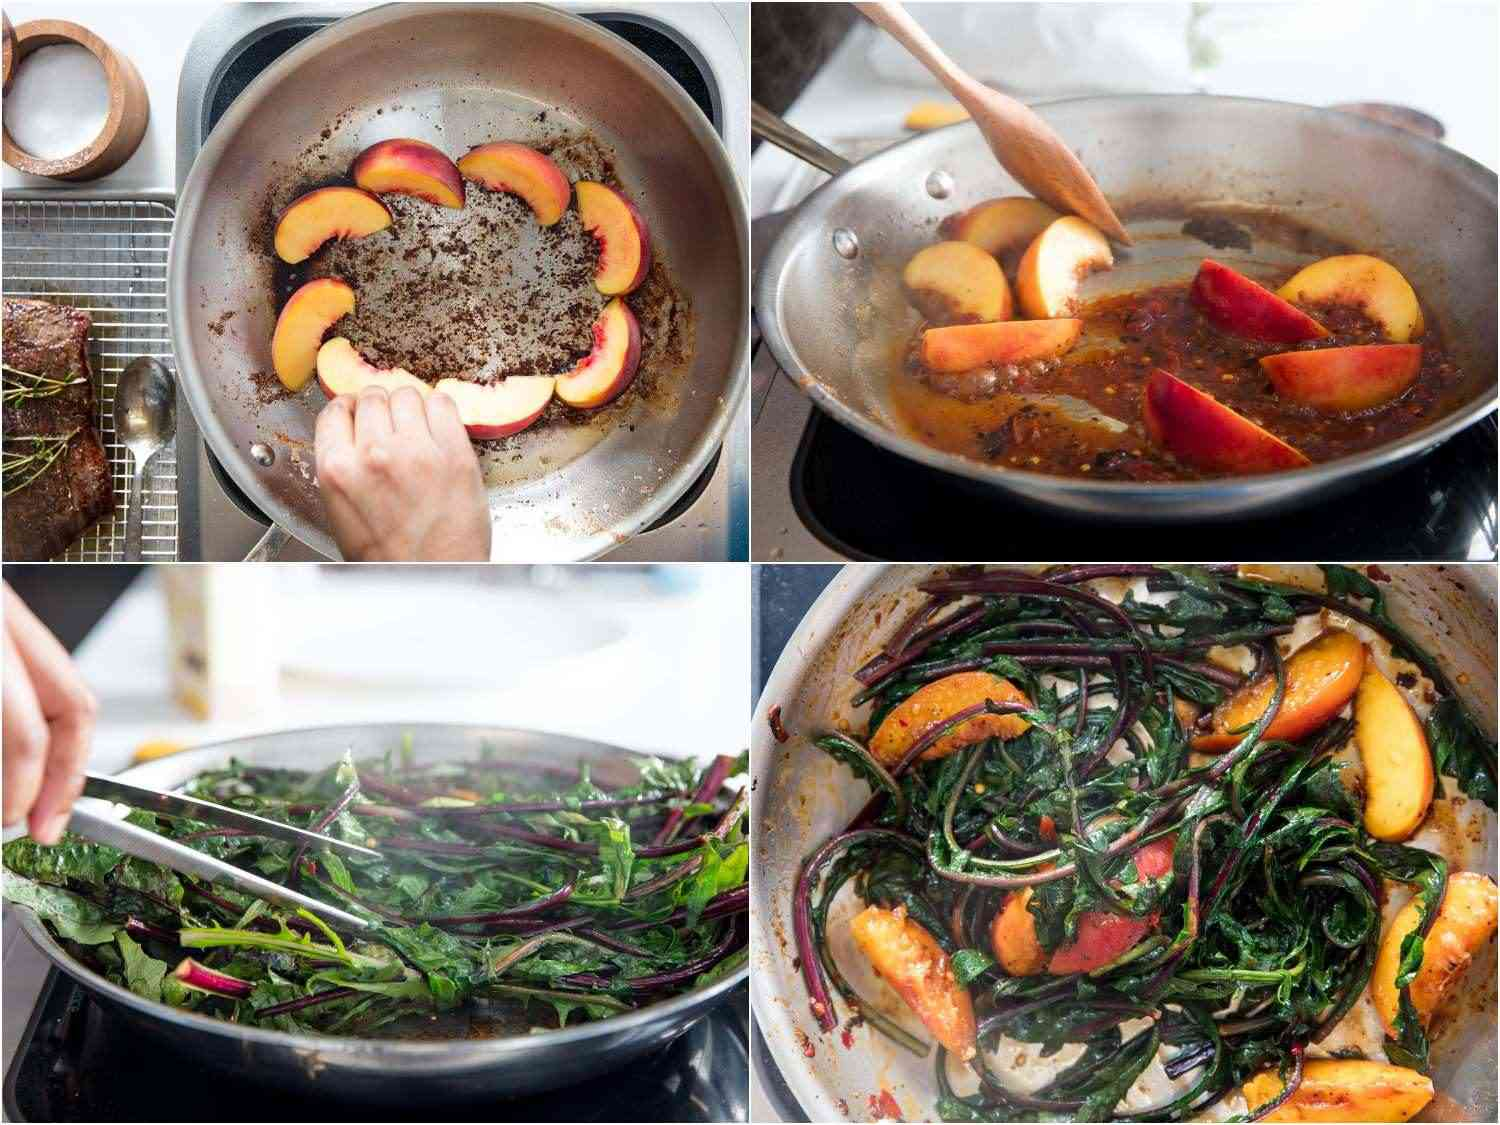 Collage of photos of cooking peaches and greens to accompany flank steak: placing peach slices in the fond in a skillet, stirring the peaches and pan sauce, adding dandelion greens to wilt, skillet full of seared peach slices and wilted greens